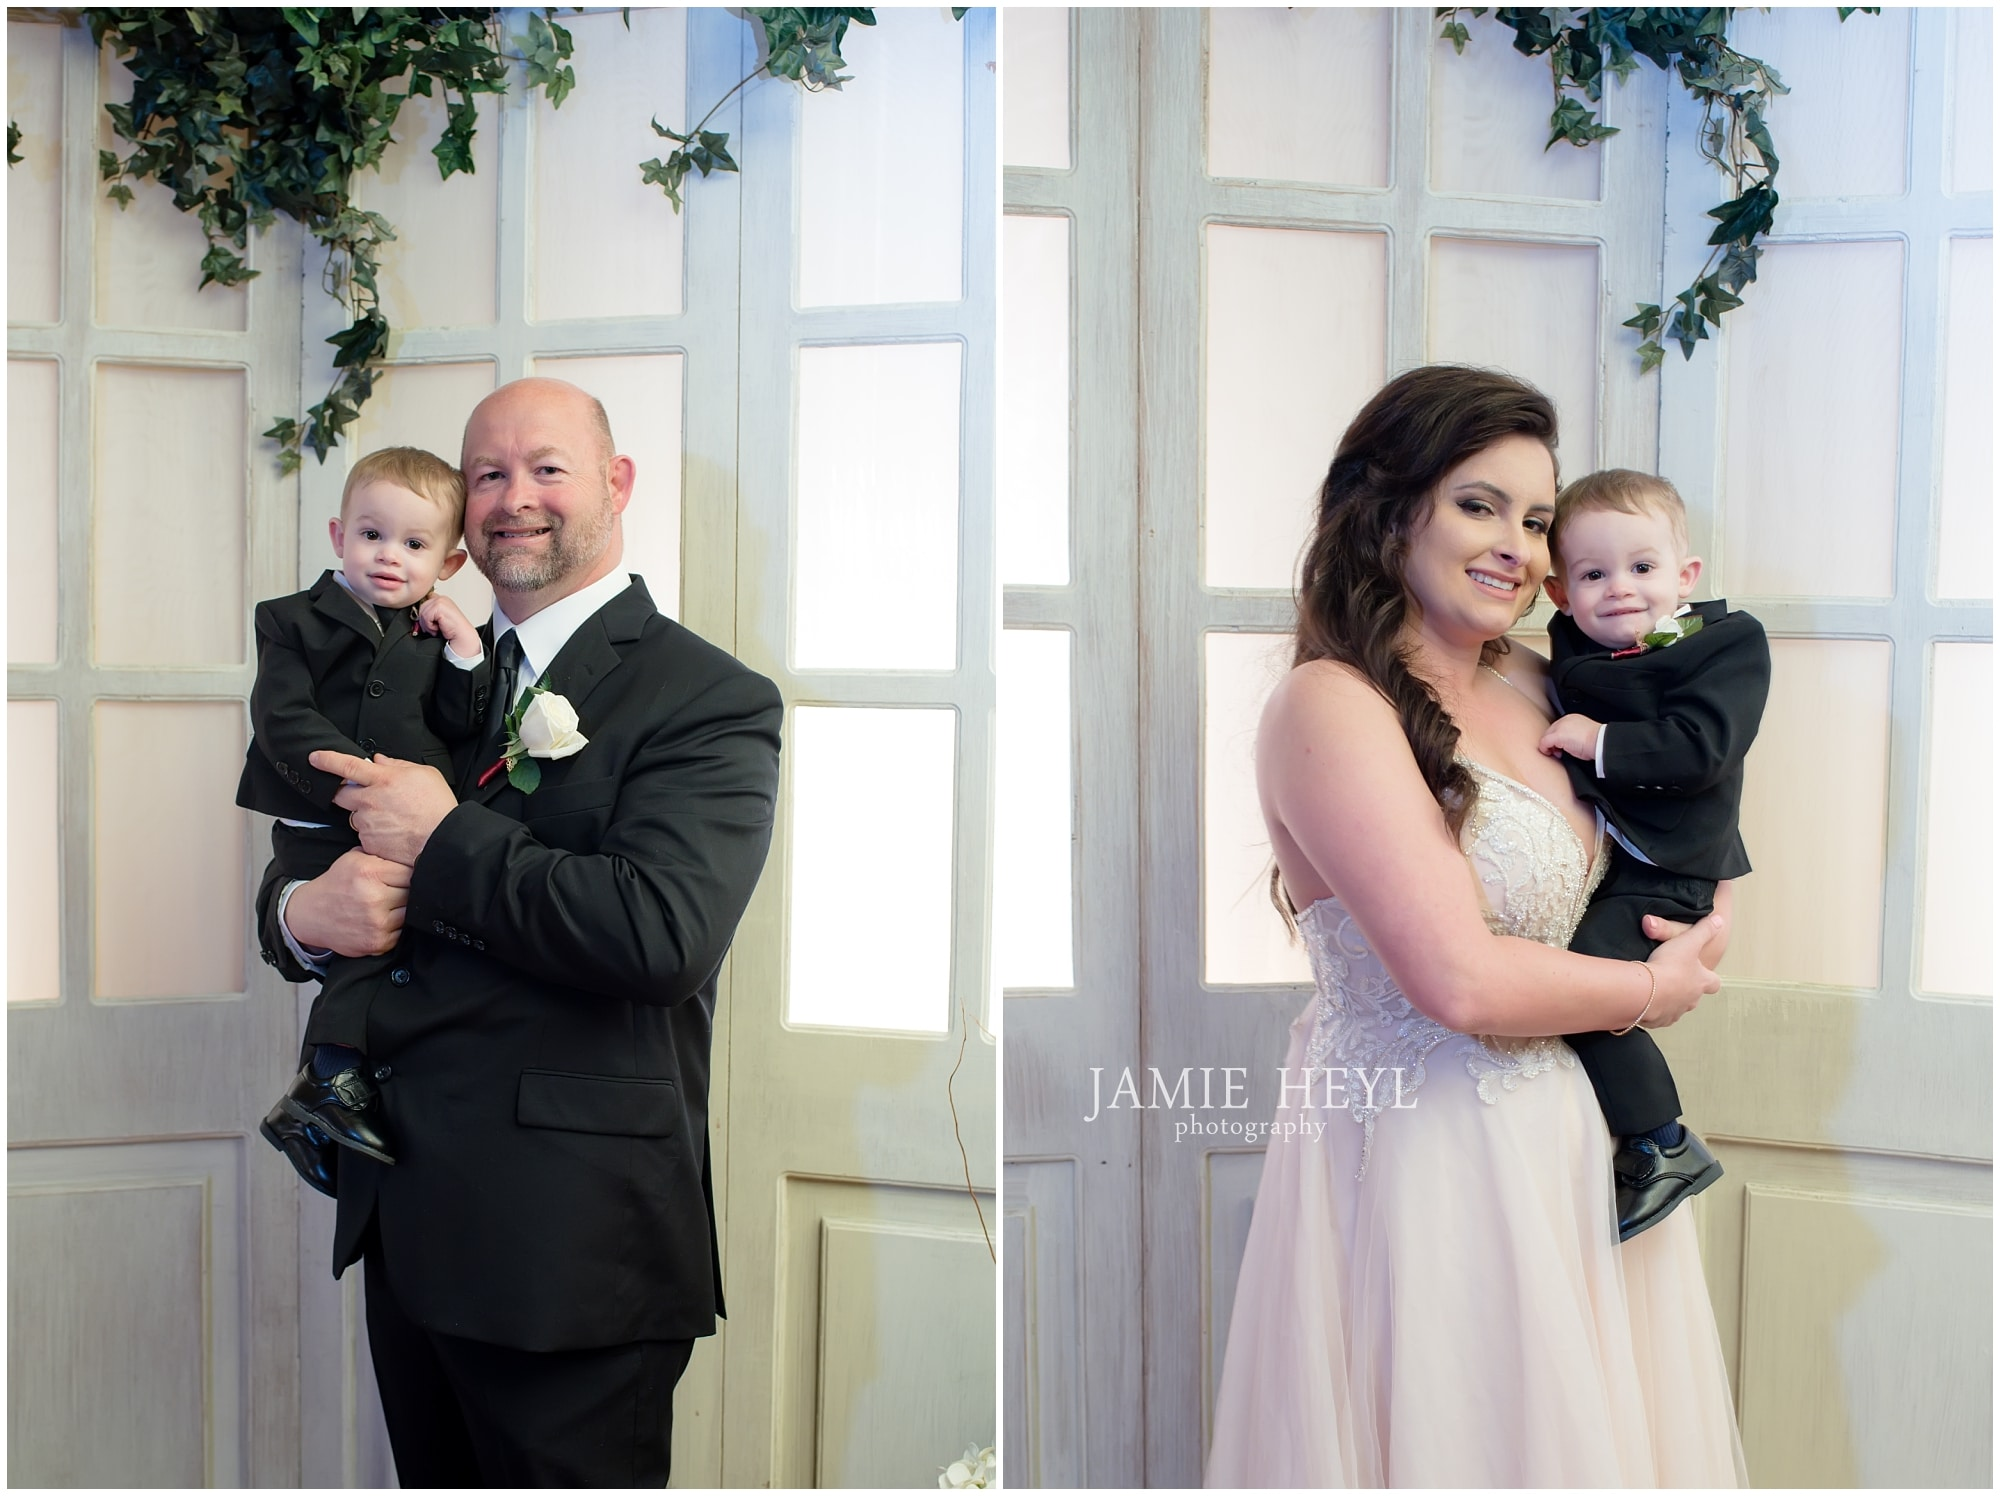 Elegant Events of the South backdrop photos